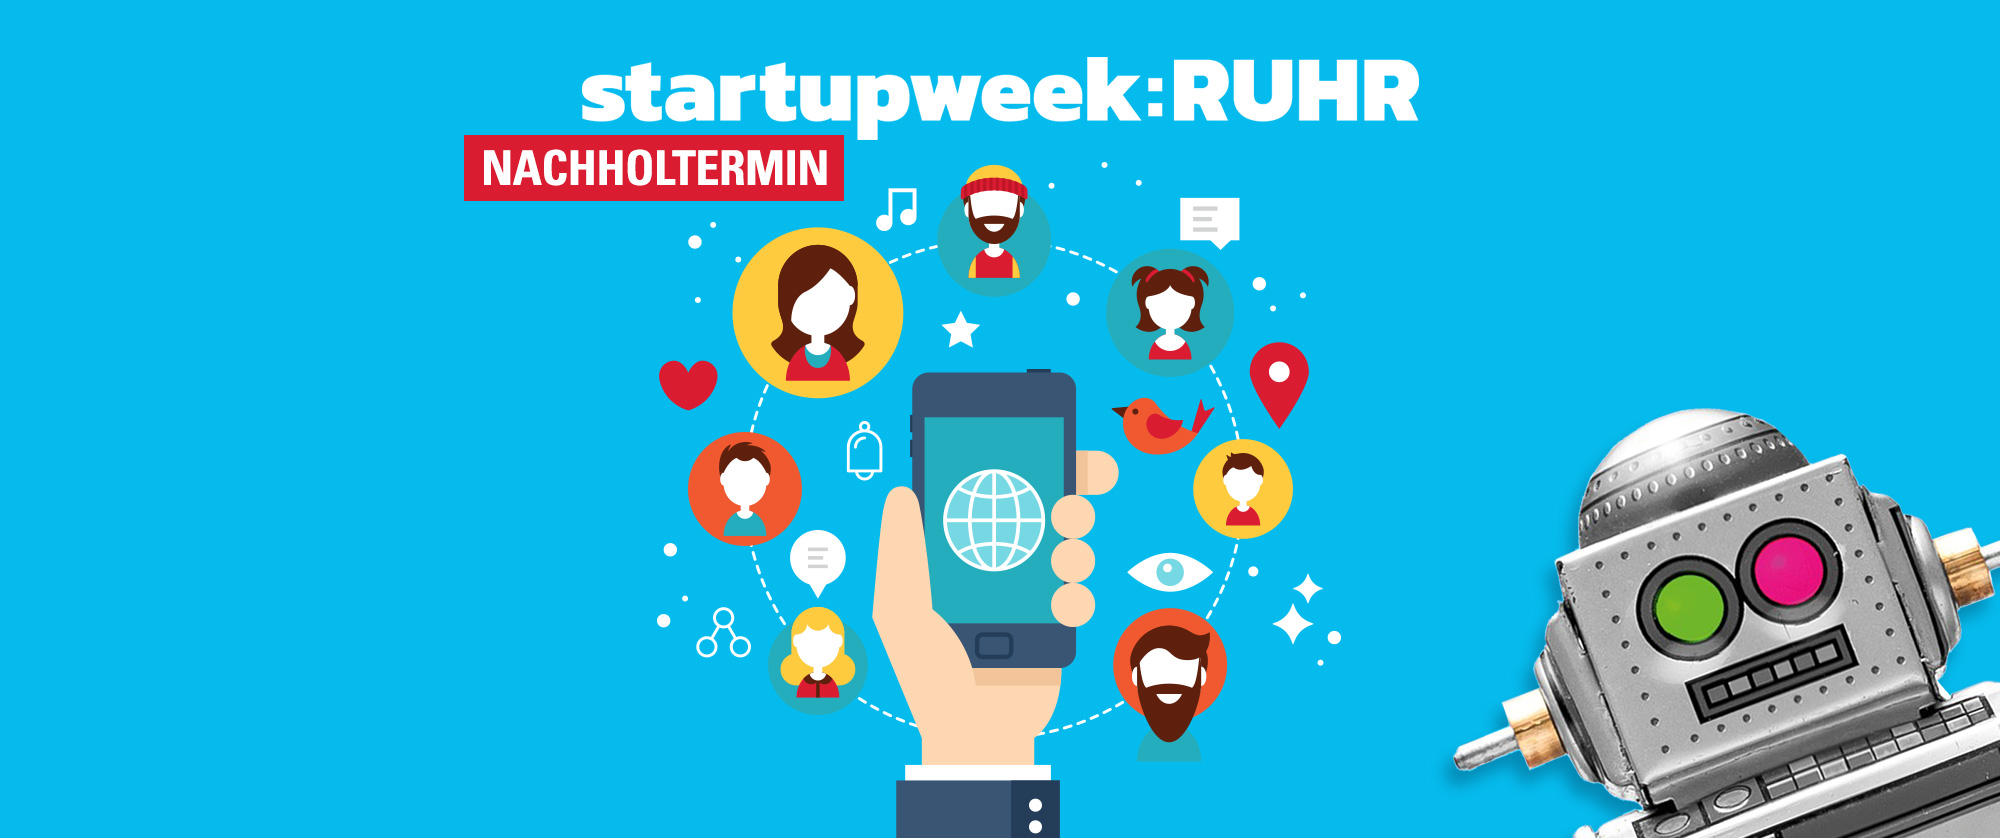 Camp Essen - Startupweek 2018 Social Media Facebook Instagram - Nachholtermin